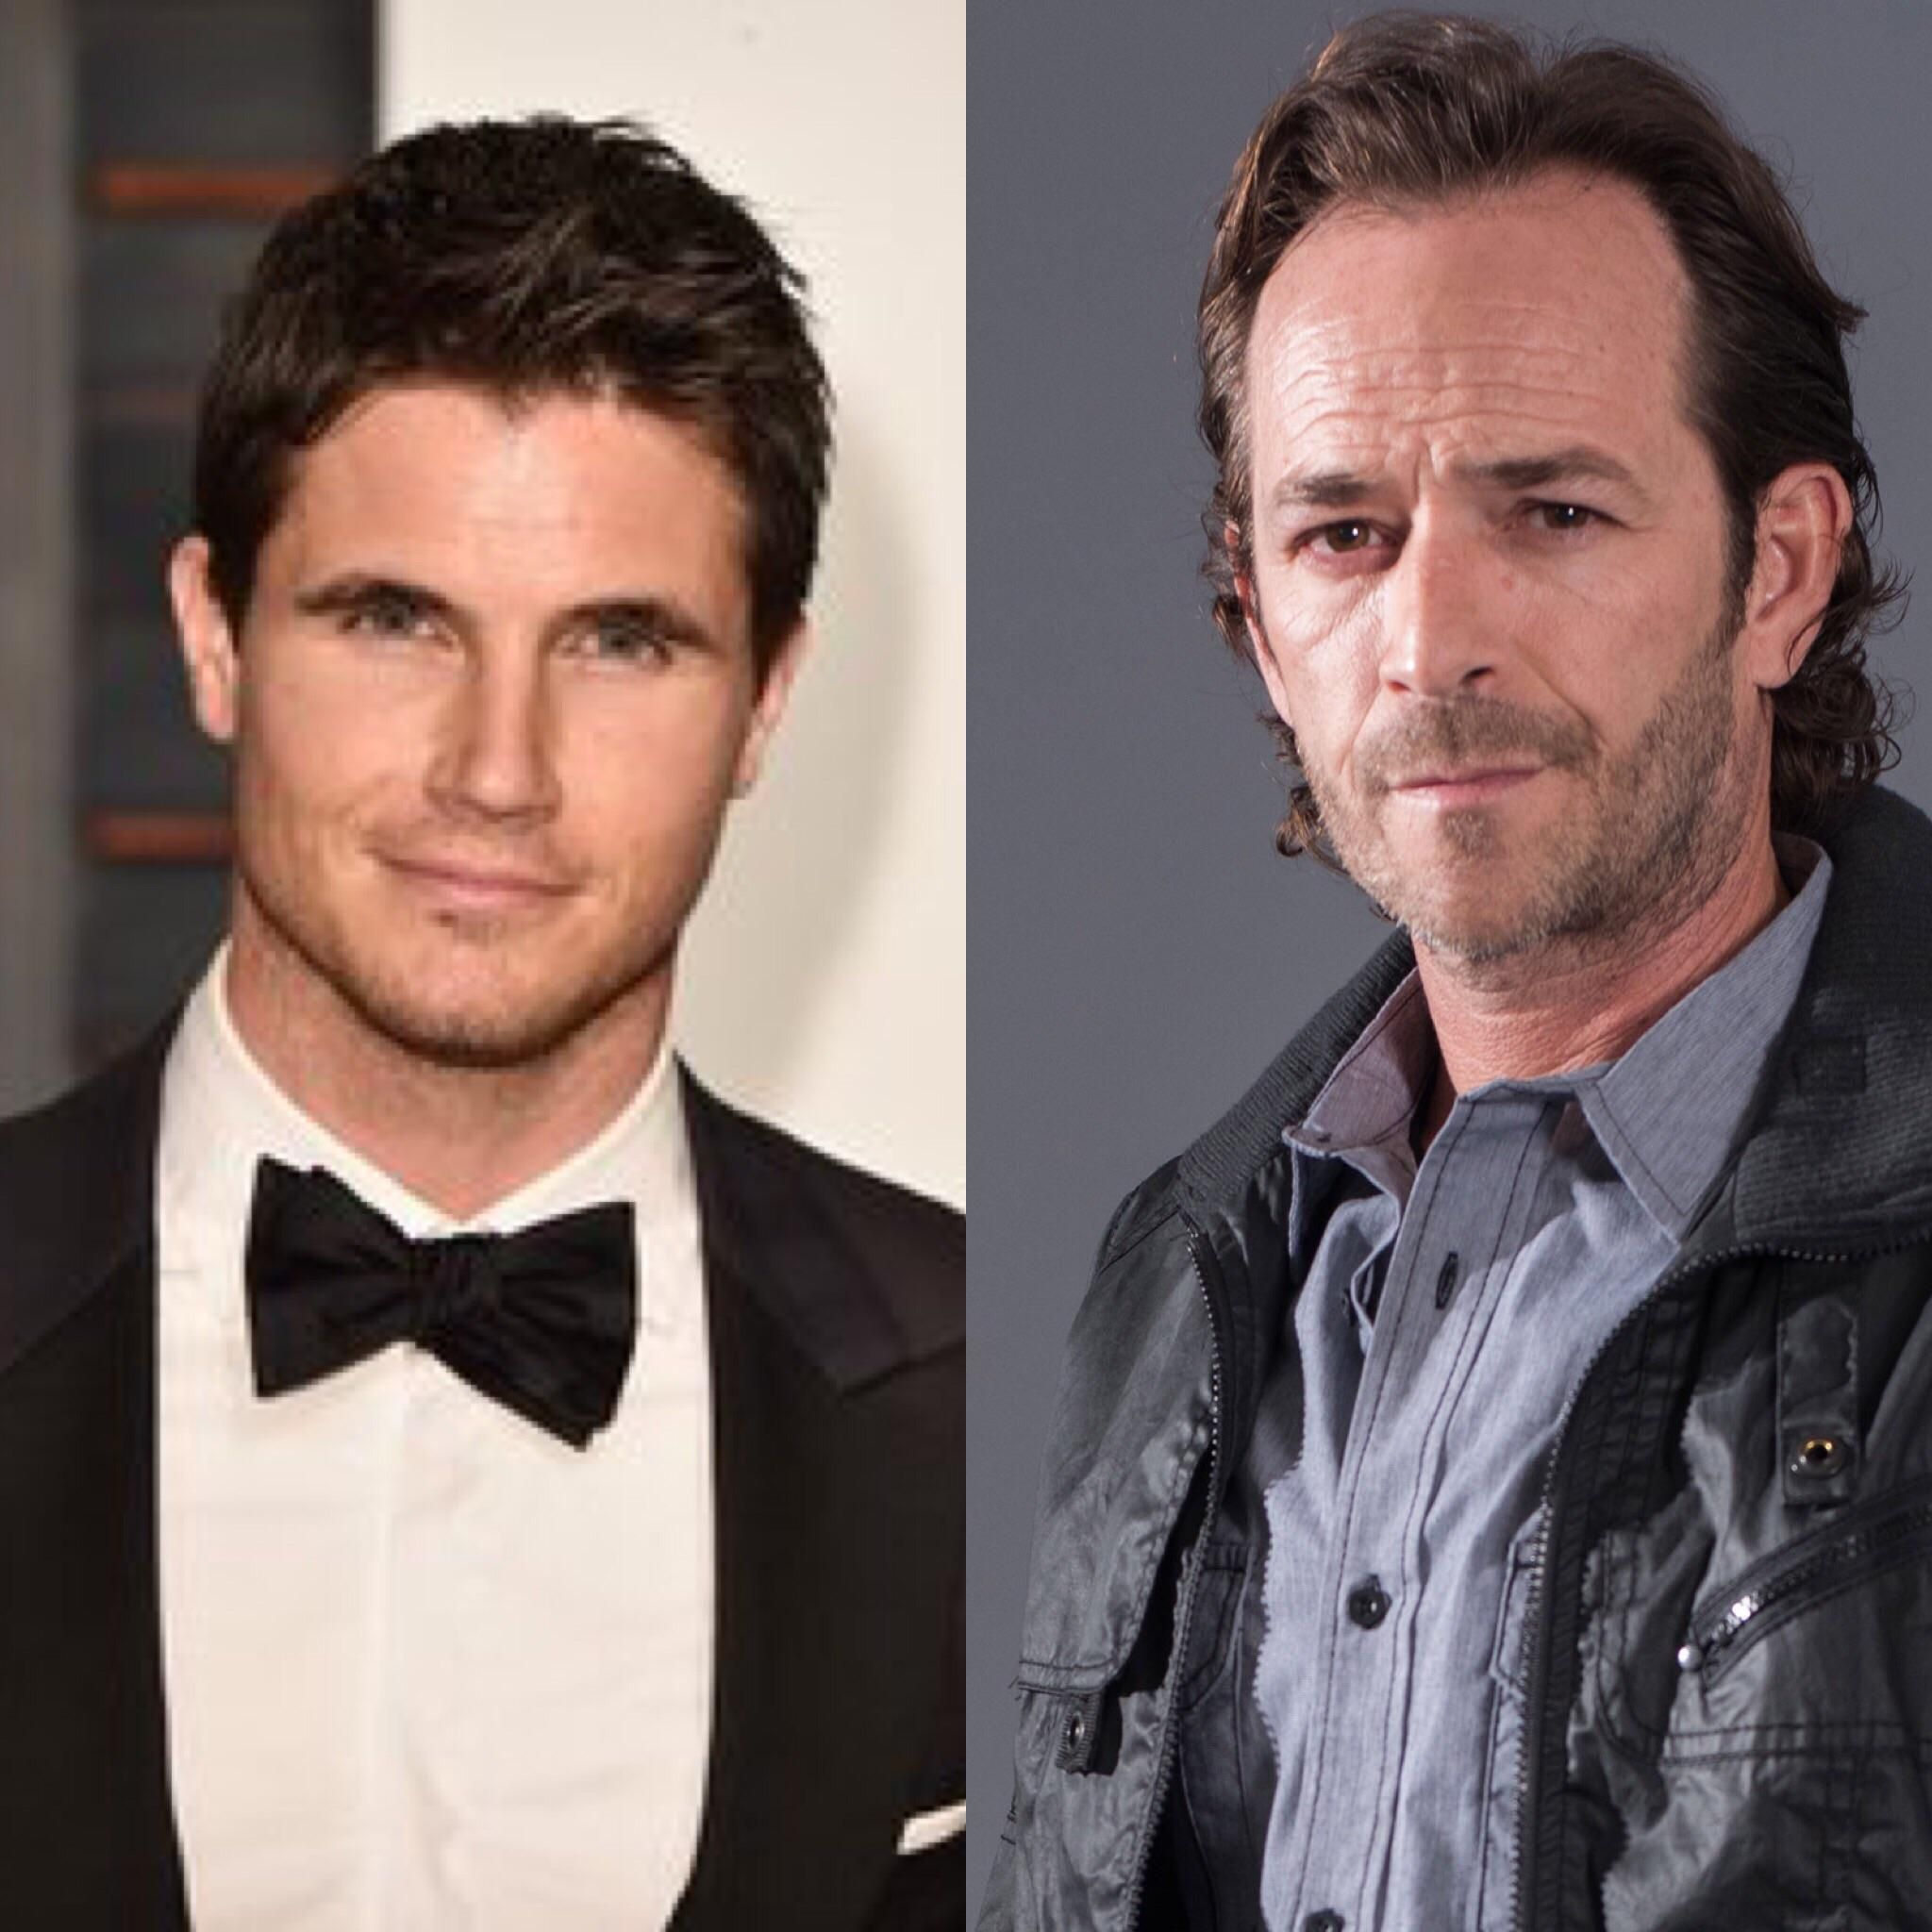 My Casting For Nate And Sam In A Live Action Uncharted 4 Movie